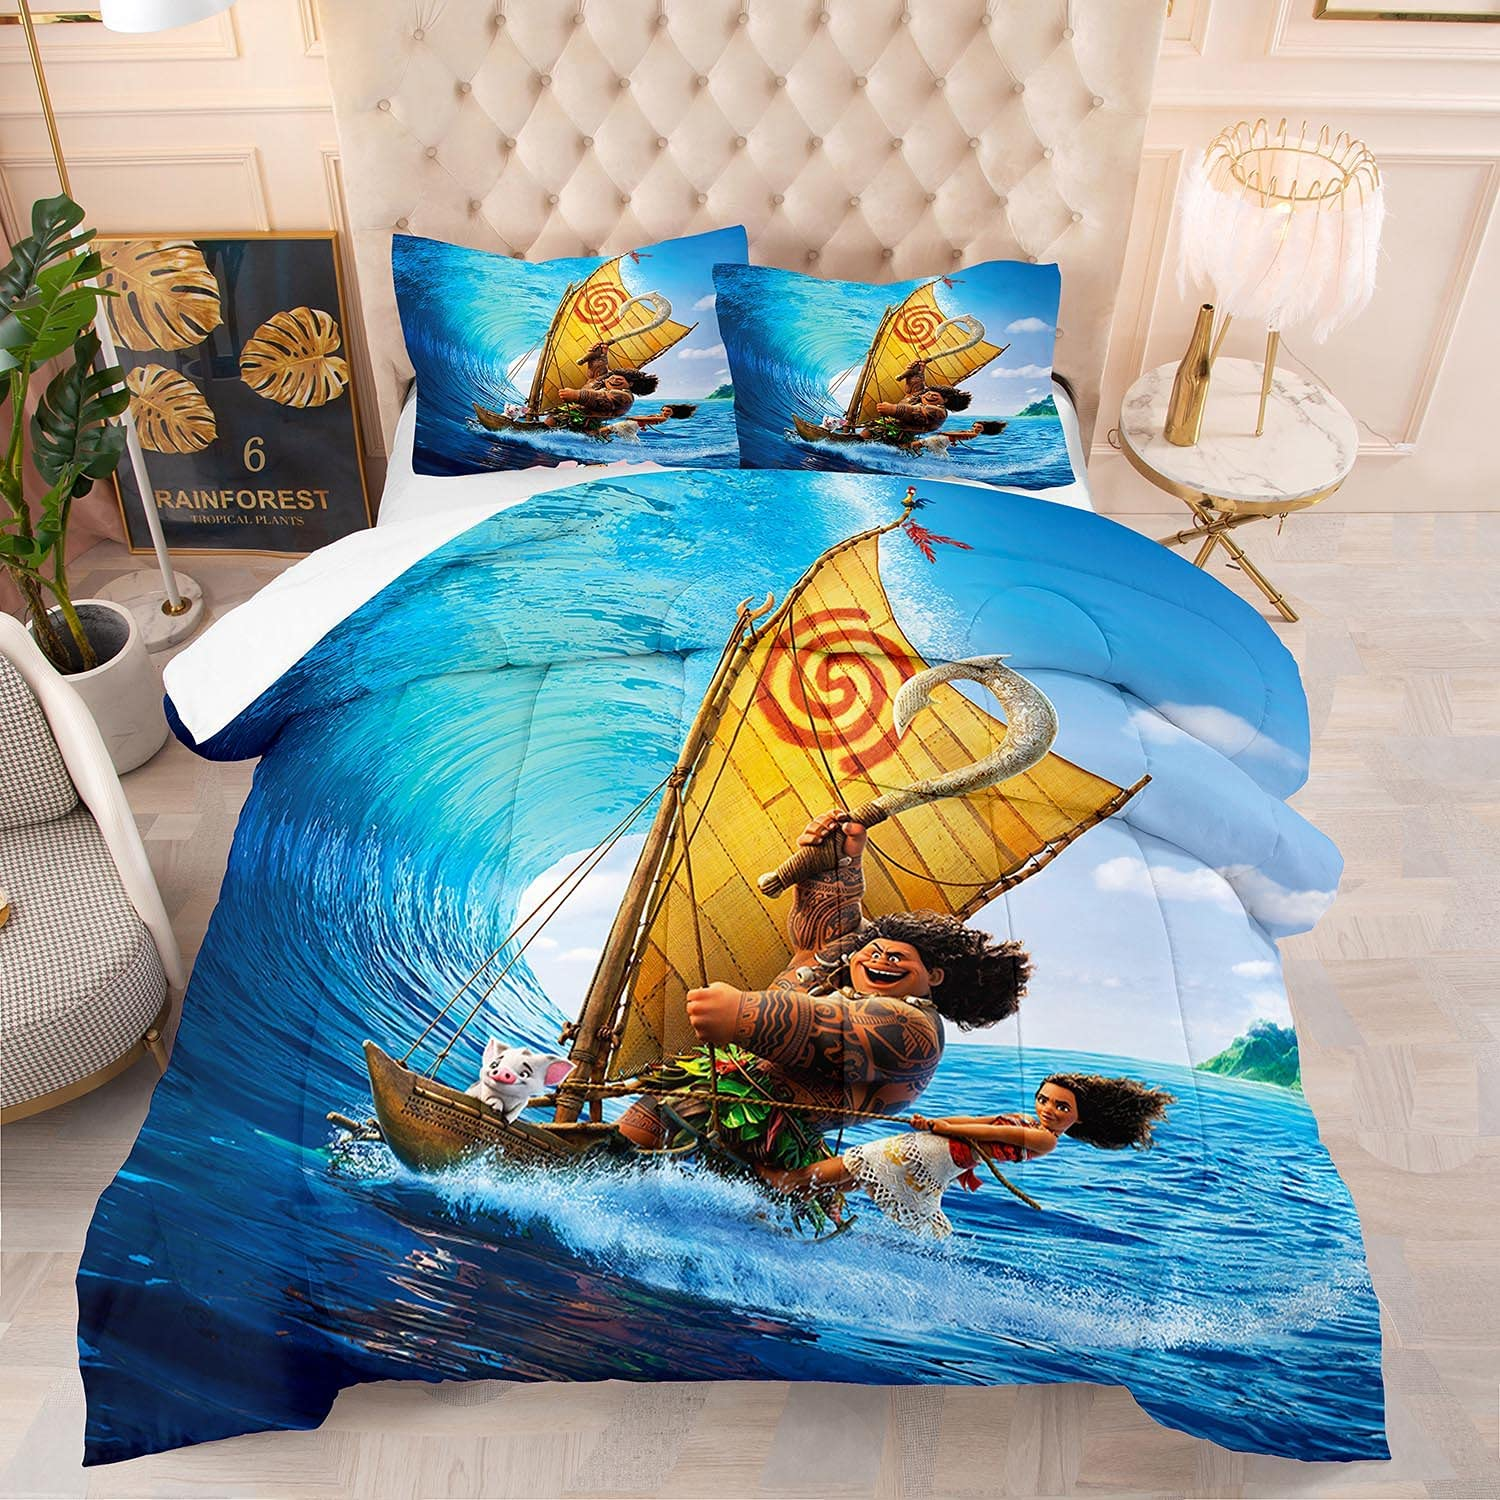 Moana Comforter Set King Size Cartoon Sets G Regular store for Quilted Bedding List price